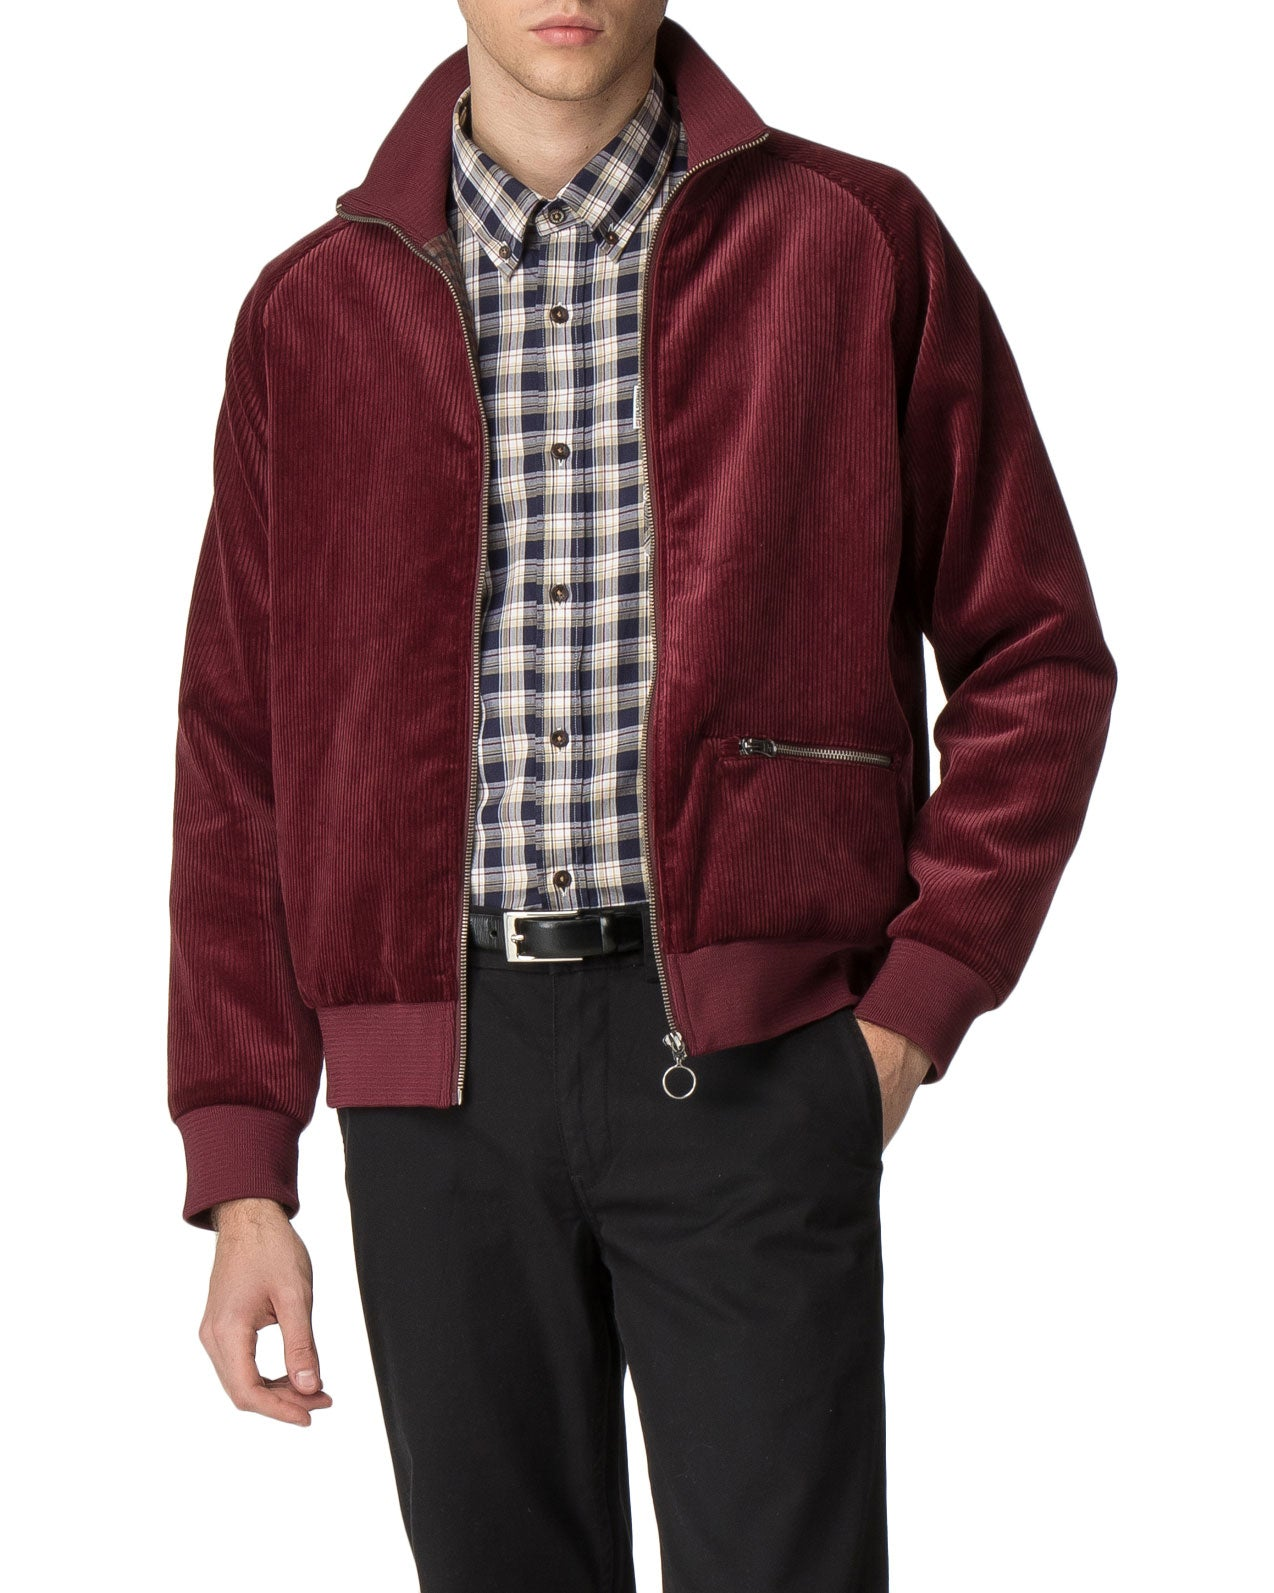 Cord/Faux Suede Track Jacket - Burgundy